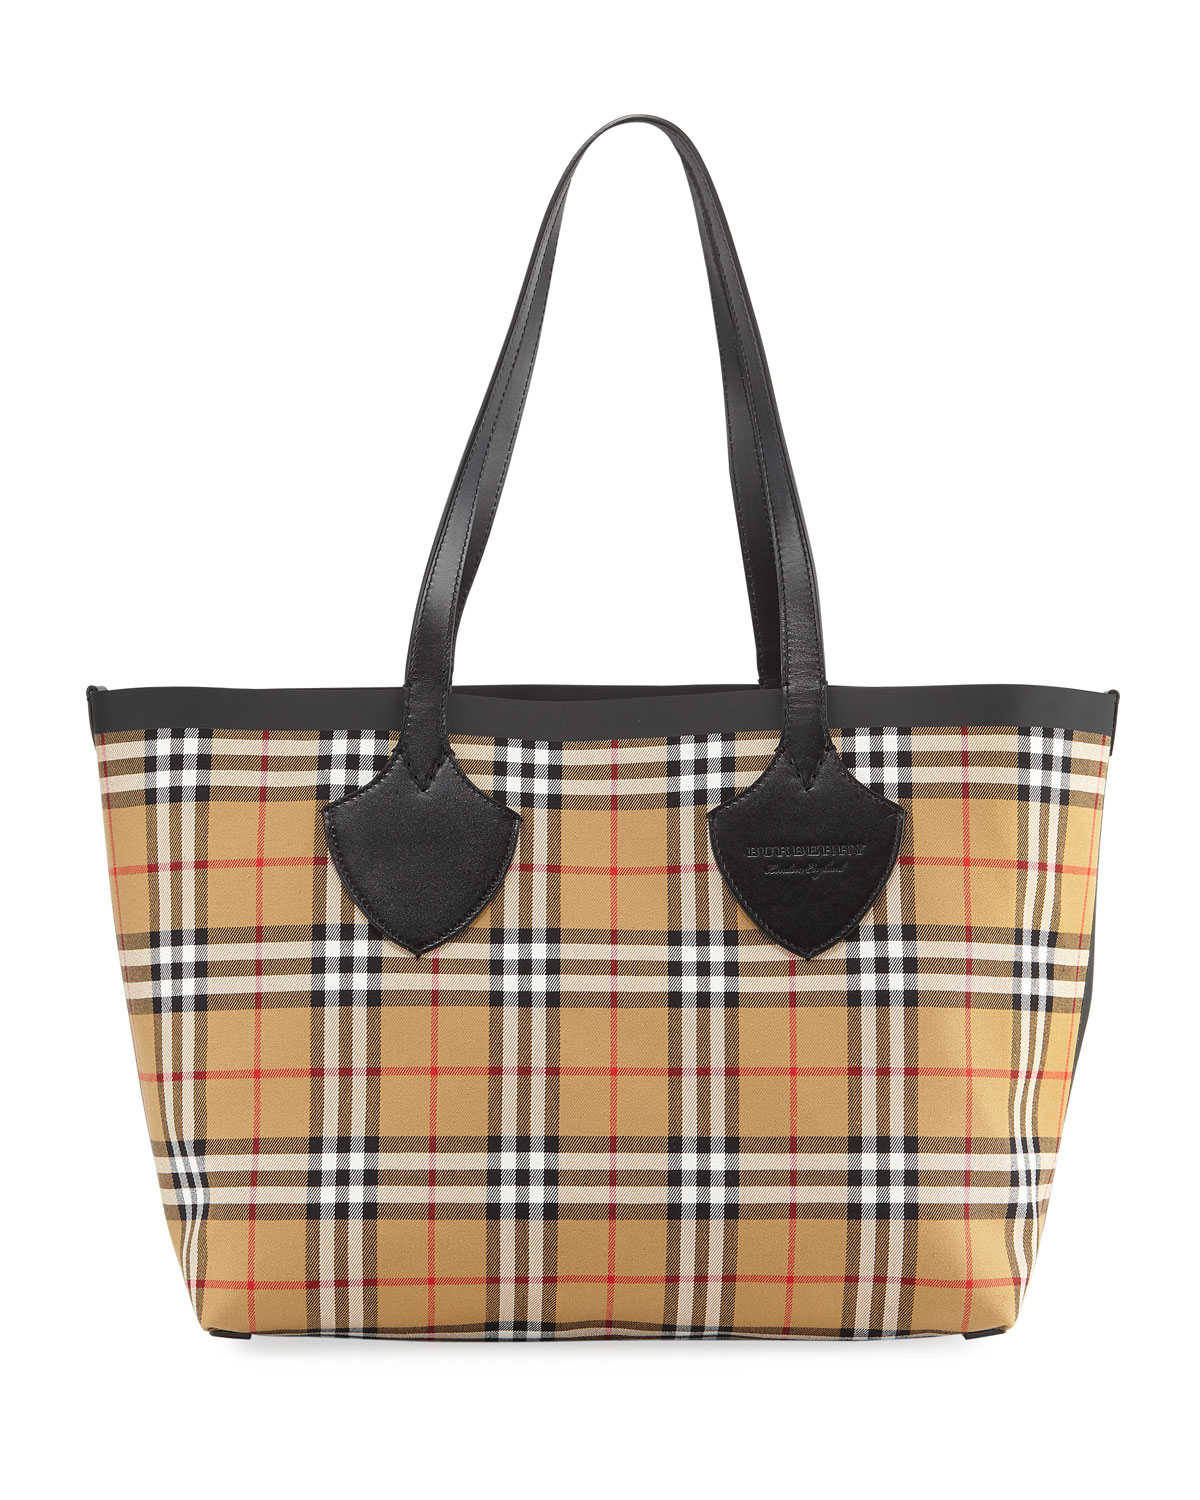 Burberry Medium Reversible Bonded Tartan Check Tote Bag  bb2f36c22fca9